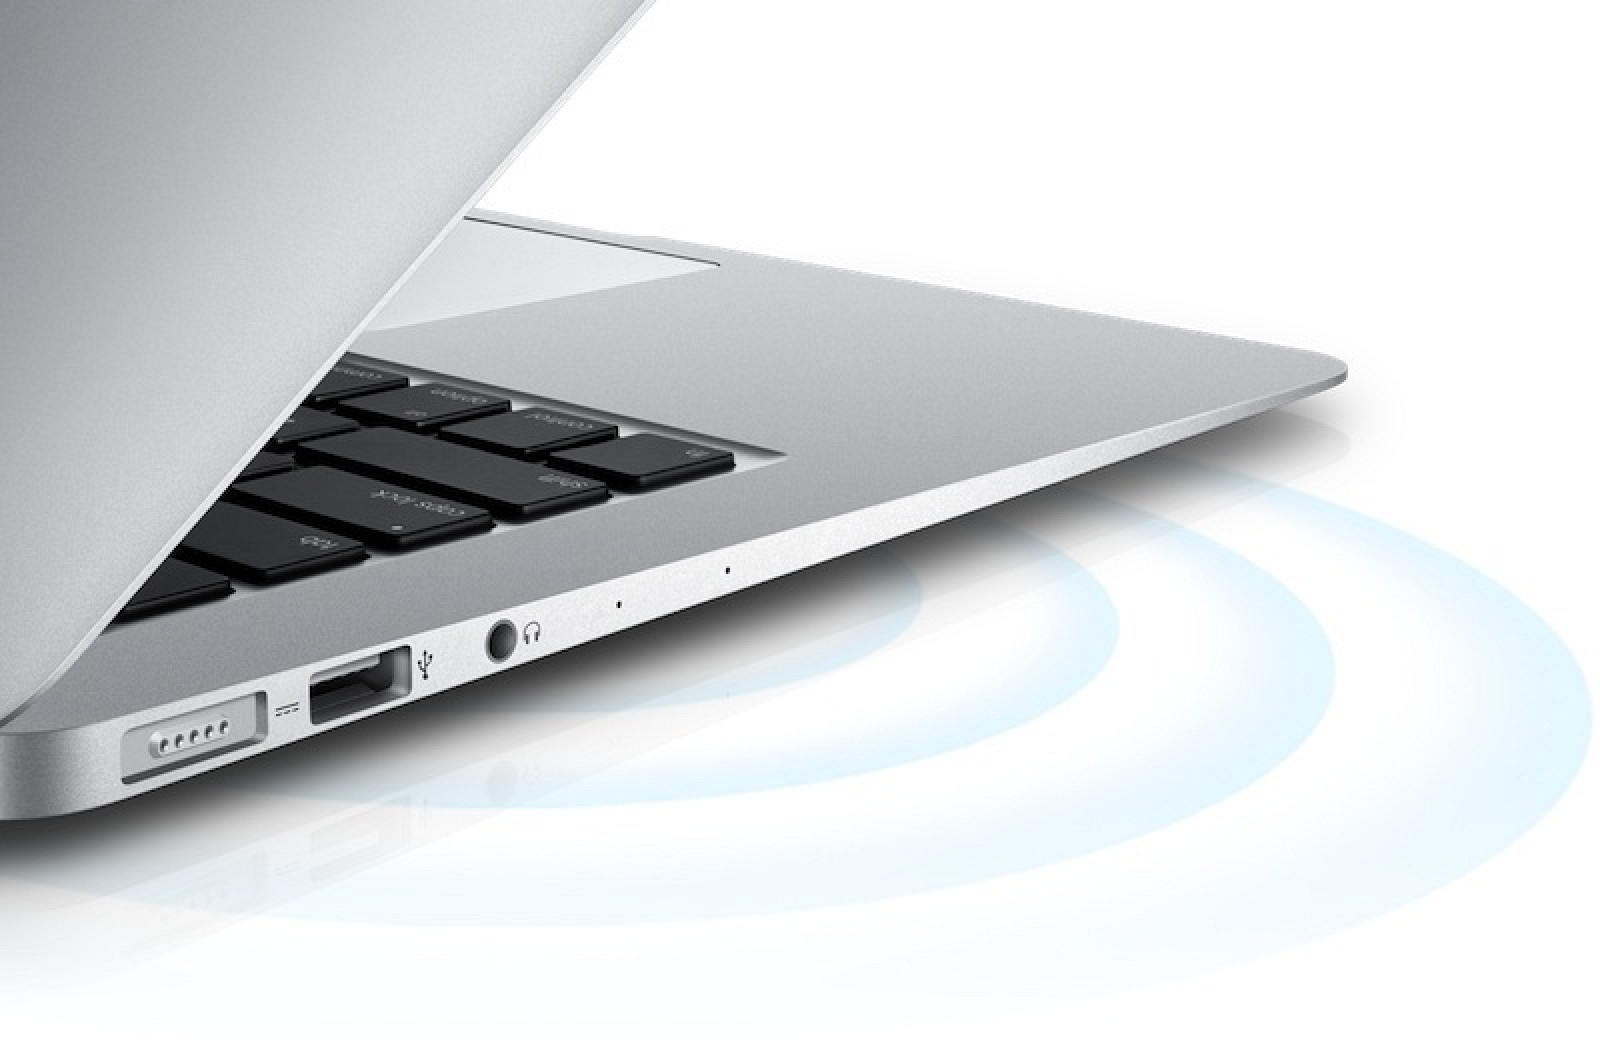 New MacBook Air Owners Complaining Of Wi Fi Issues Mac